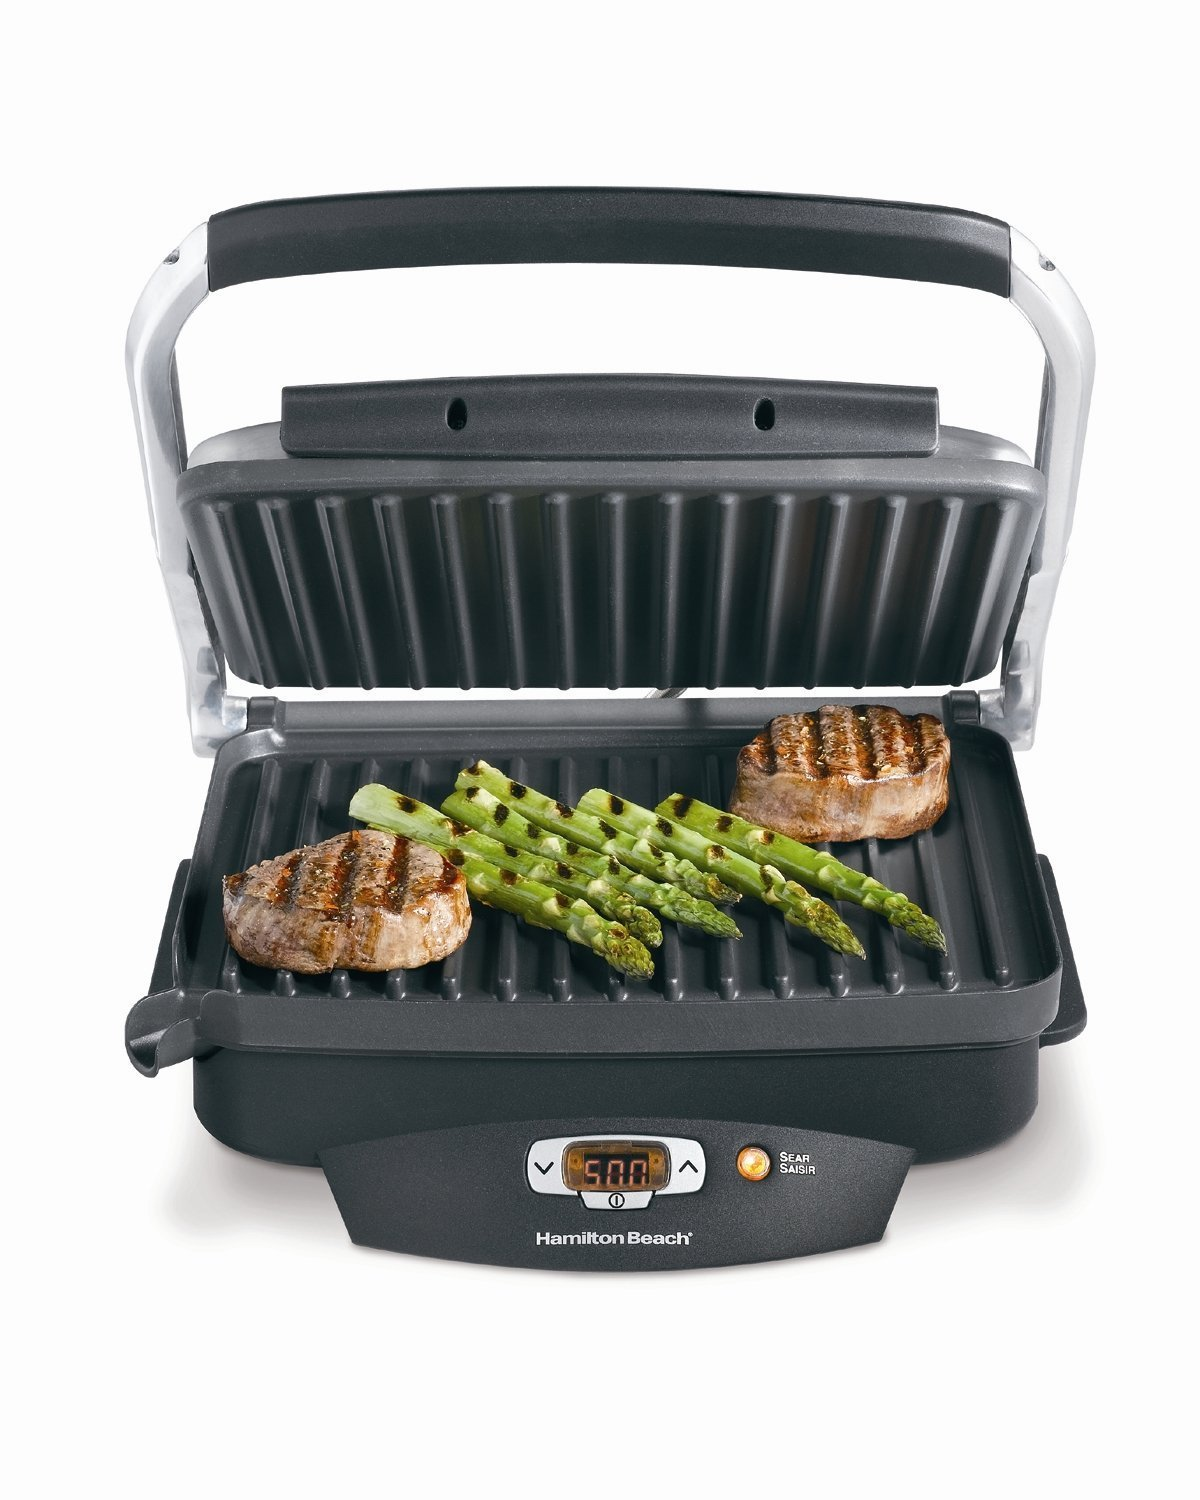 Hamilton Beach Steak Lover's Electric Digital Indoor Searing Grill, Panini Press and Sandwich Maker, Reaches up to 500 Degrees, Nonstick 100 Square Inch Large Surface (25331) by Hamilton Beach